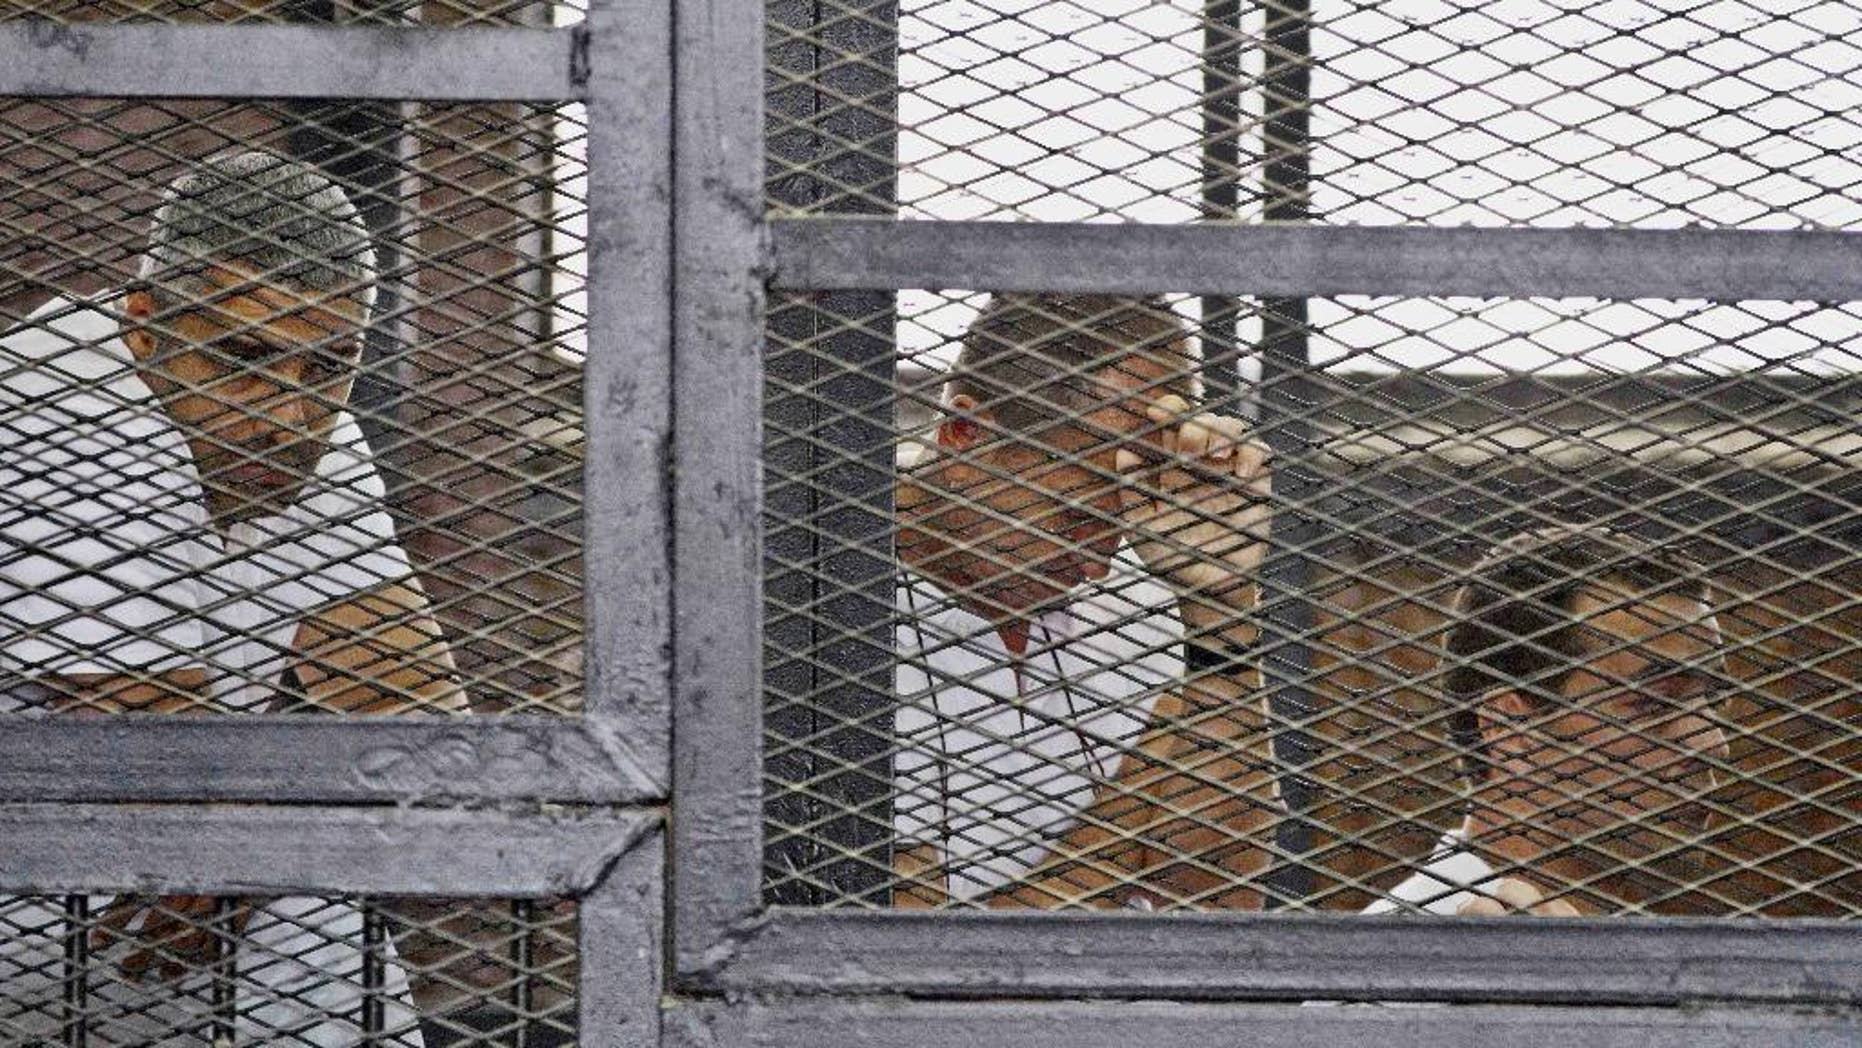 FILE - In this Thursday, May 15, 2014 file photo, from left, Mohammed Fahmy, Canadian-Egyptian acting bureau chief of Al-Jazeera, Australian correspondent Peter Greste, and Egyptian producer Baher Mohamed appear in a defendant's cage along with several other defendants during their trial on terror charges at a courtroom in Cairo. Egypt's state news agency says the trial of three Al-Jazeera English journalists and 17 others has adjourned until next week when the judge will deliver the verdict, five months after the trial opened. Fahmy, Greste and Baher have been in detention since December 29. (AP Photo/Hamada Elrasam, File)